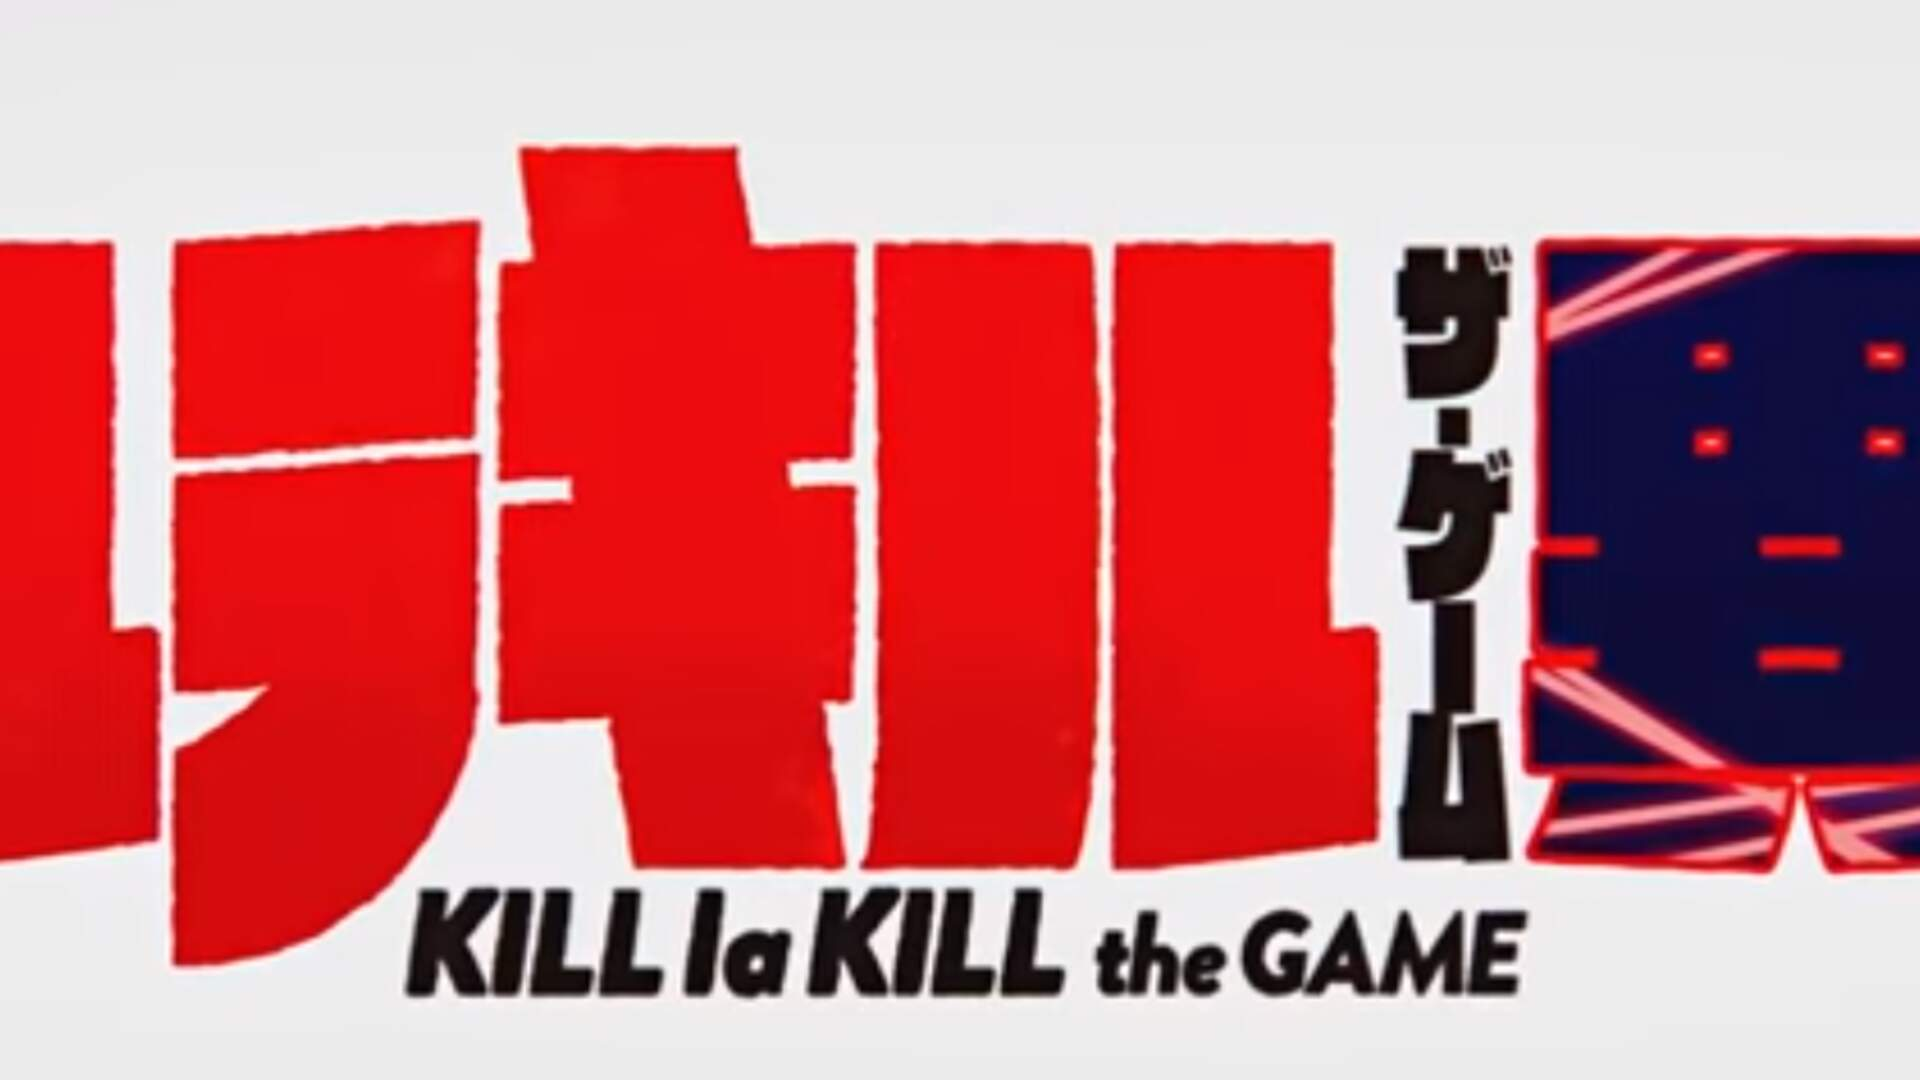 Kill la Kill Game Gets New Trailer, is Coming to PlayStation 4 and PC in 2019